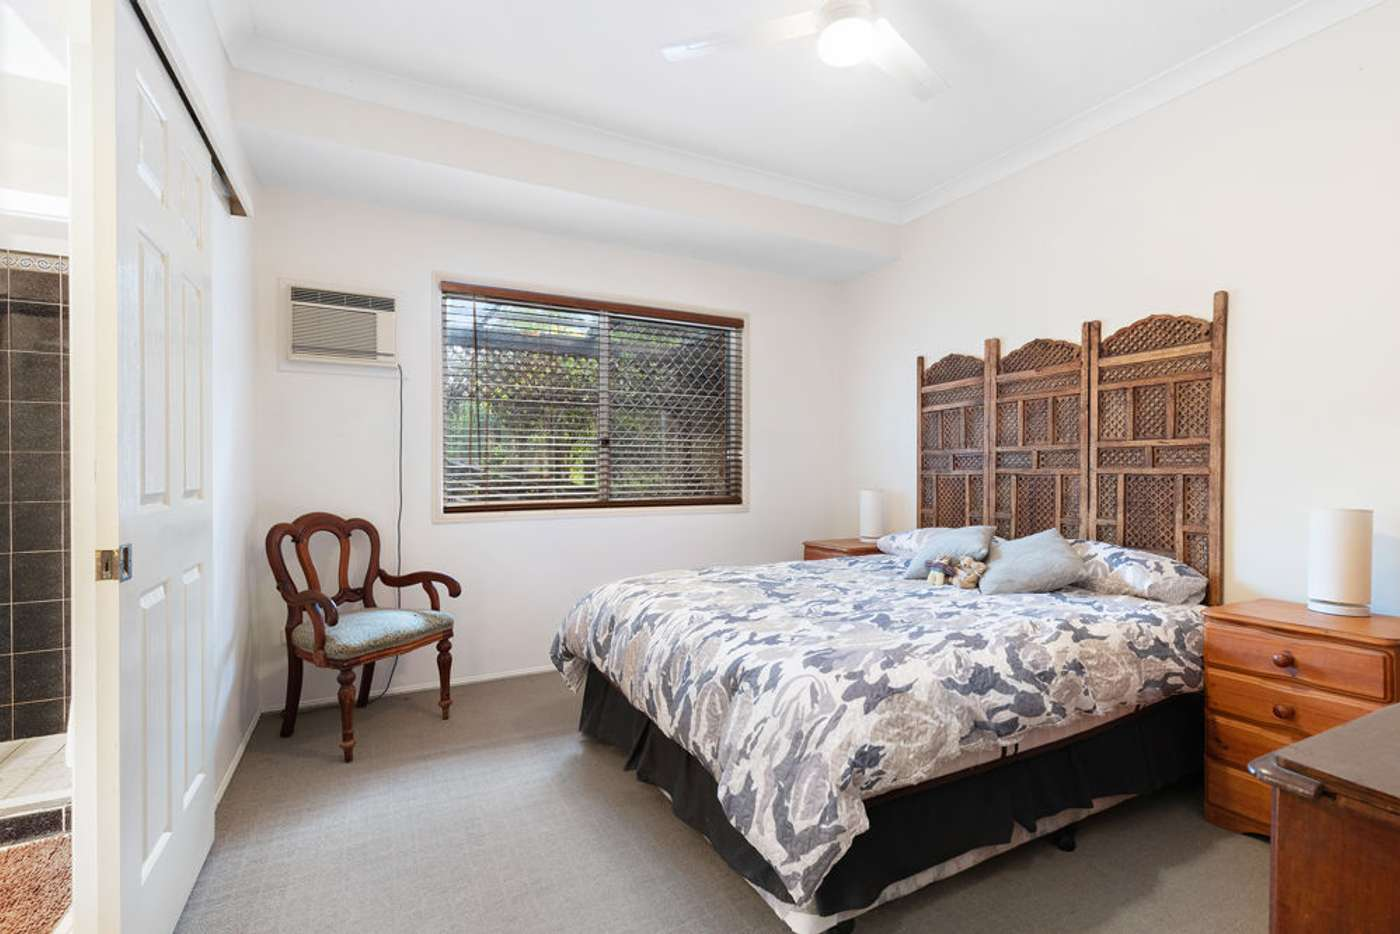 Seventh view of Homely house listing, 15 Karalla Court, Narangba QLD 4504